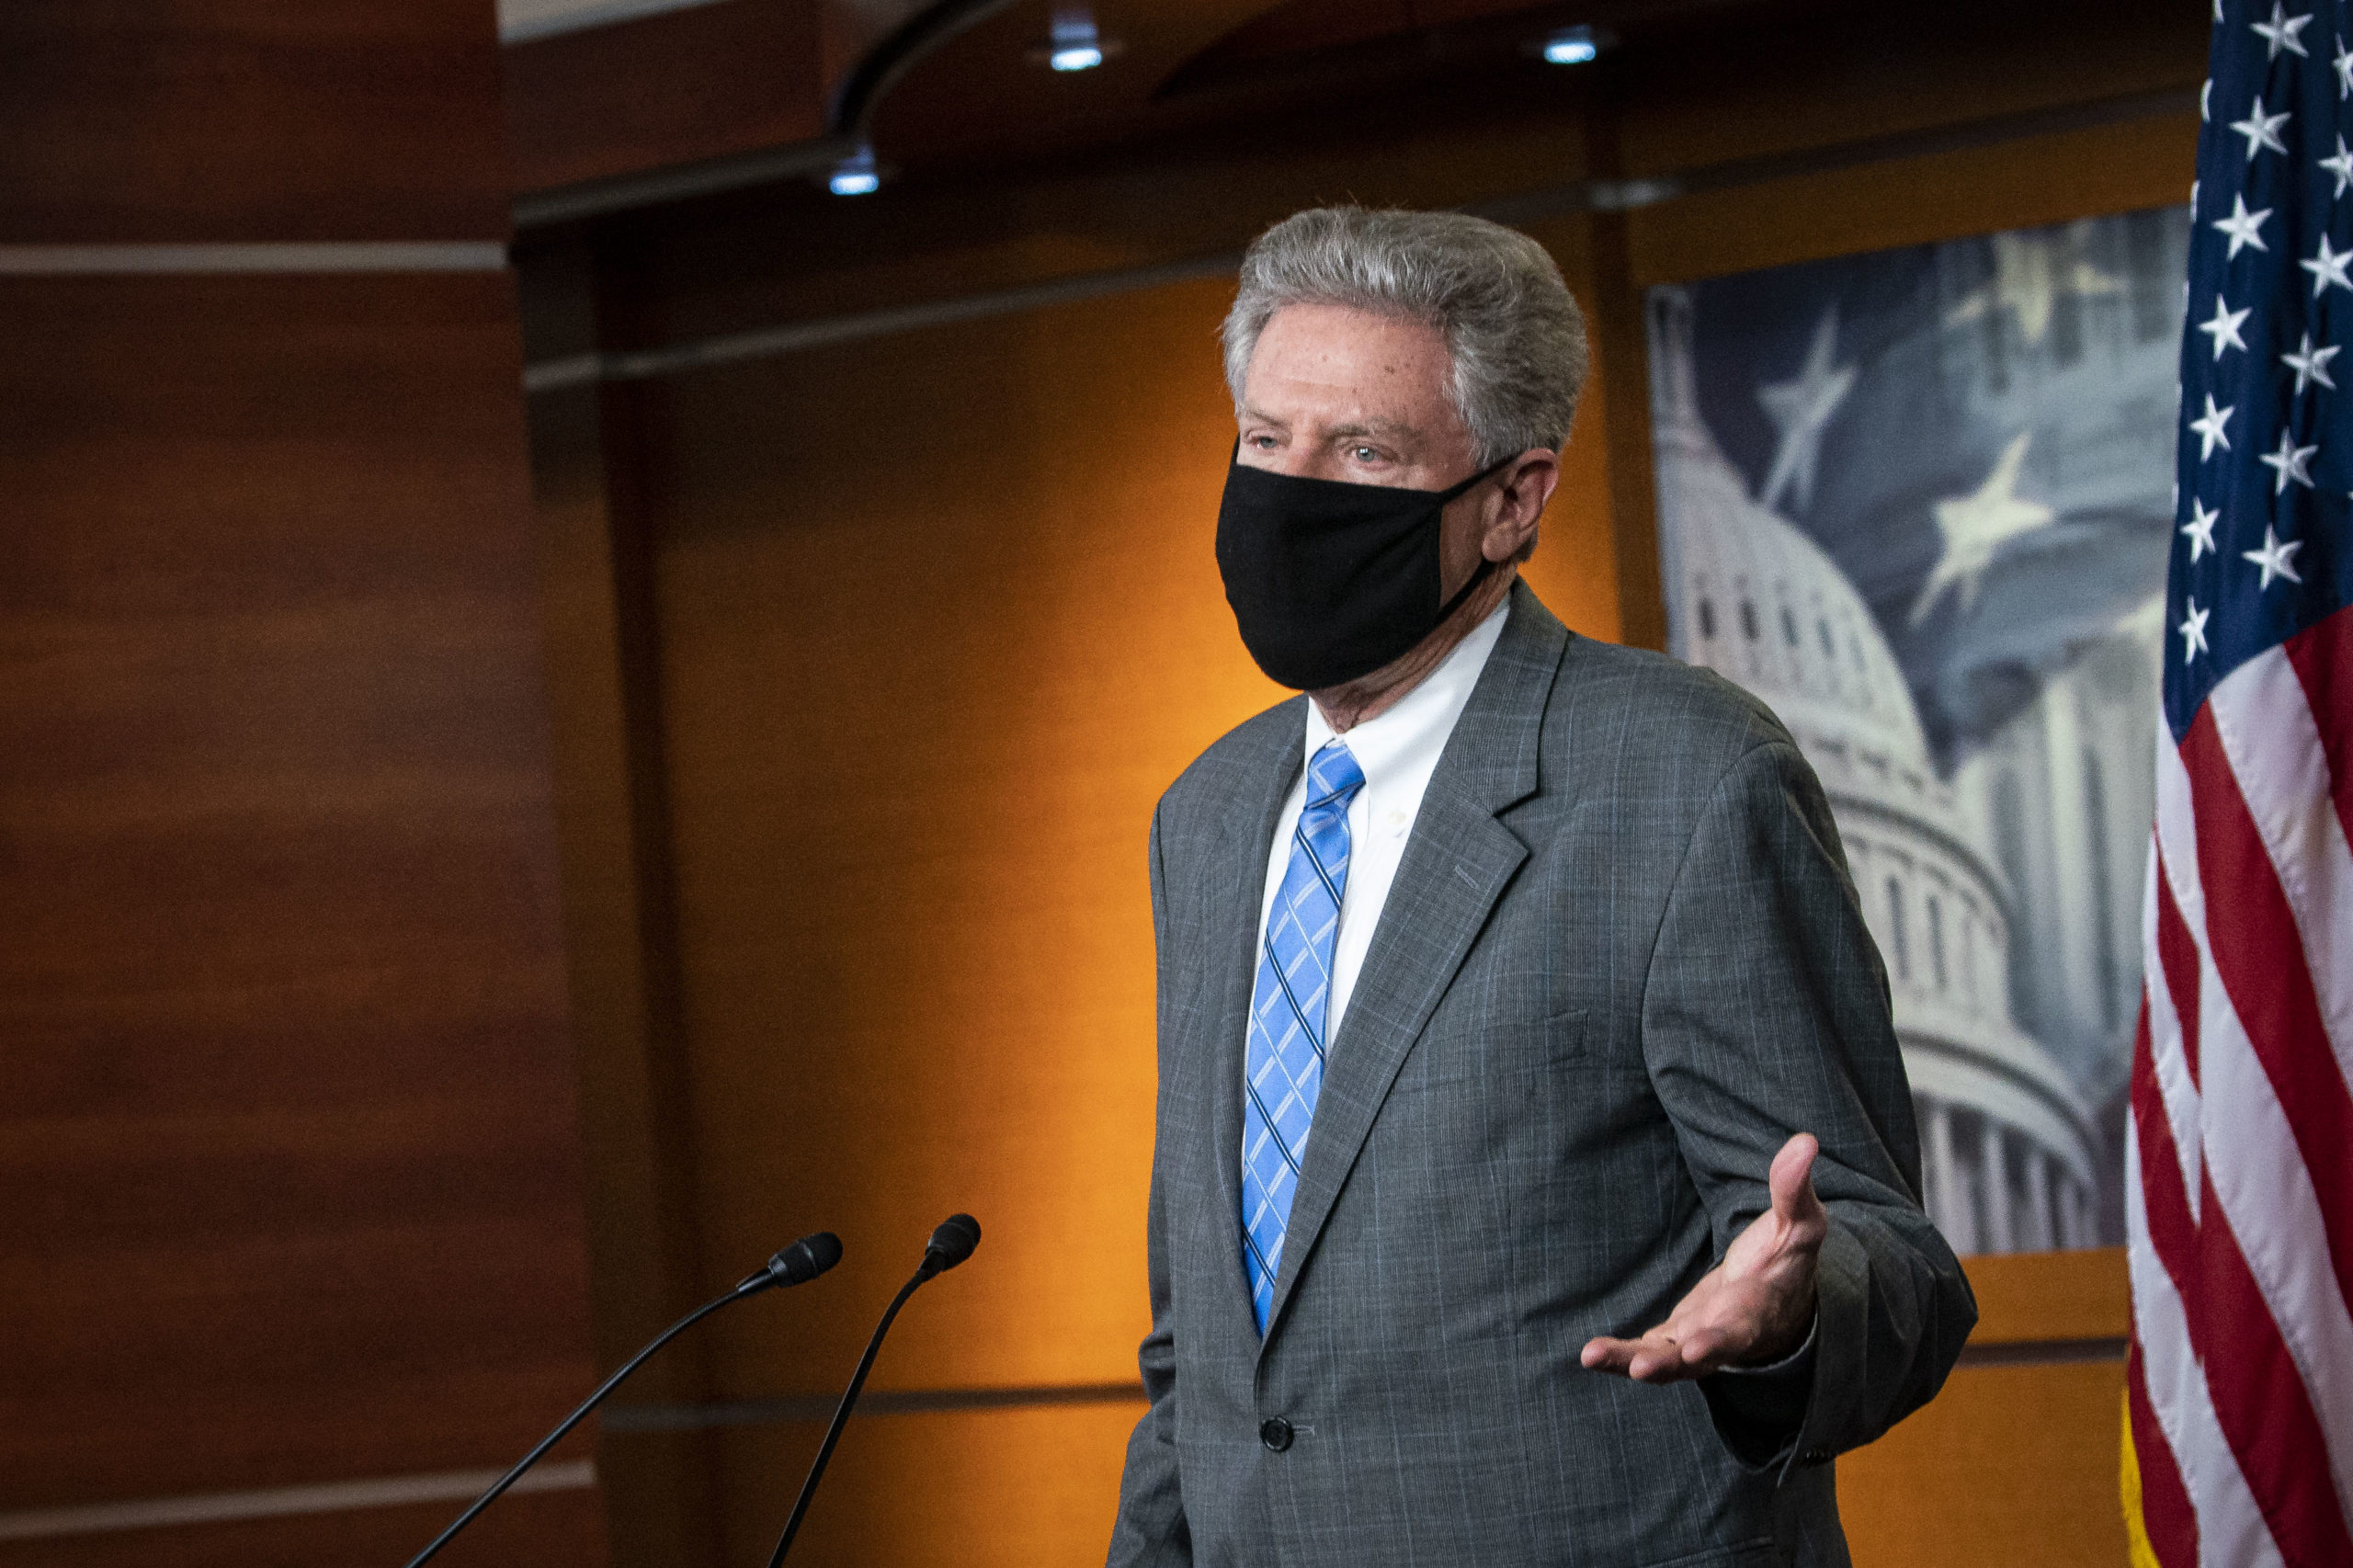 House Energy and Commerce Committee Chairman Frank Pallone speaks at a news conference. (Al Drago/Getty Images)